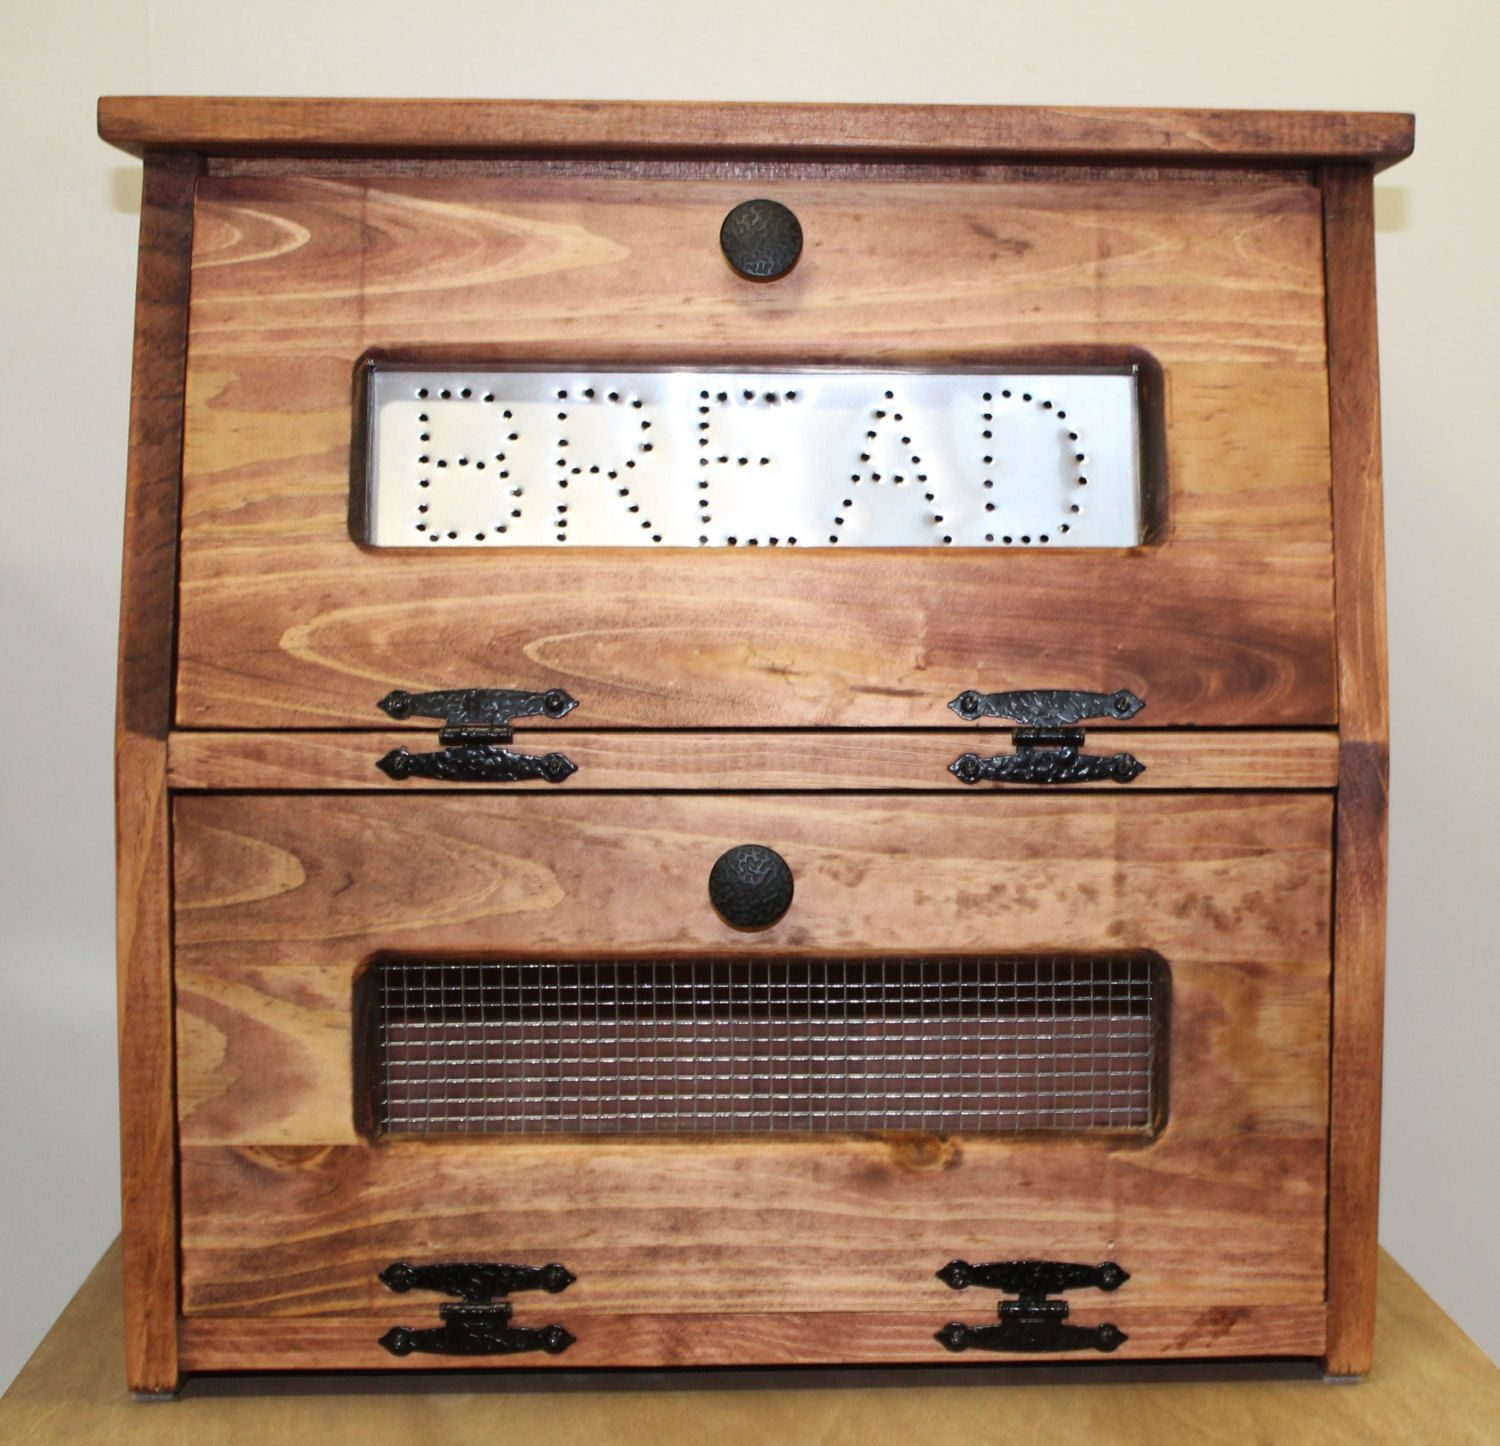 Rustic Bread Box Vegetable Bin wooden Punched Tin Storage